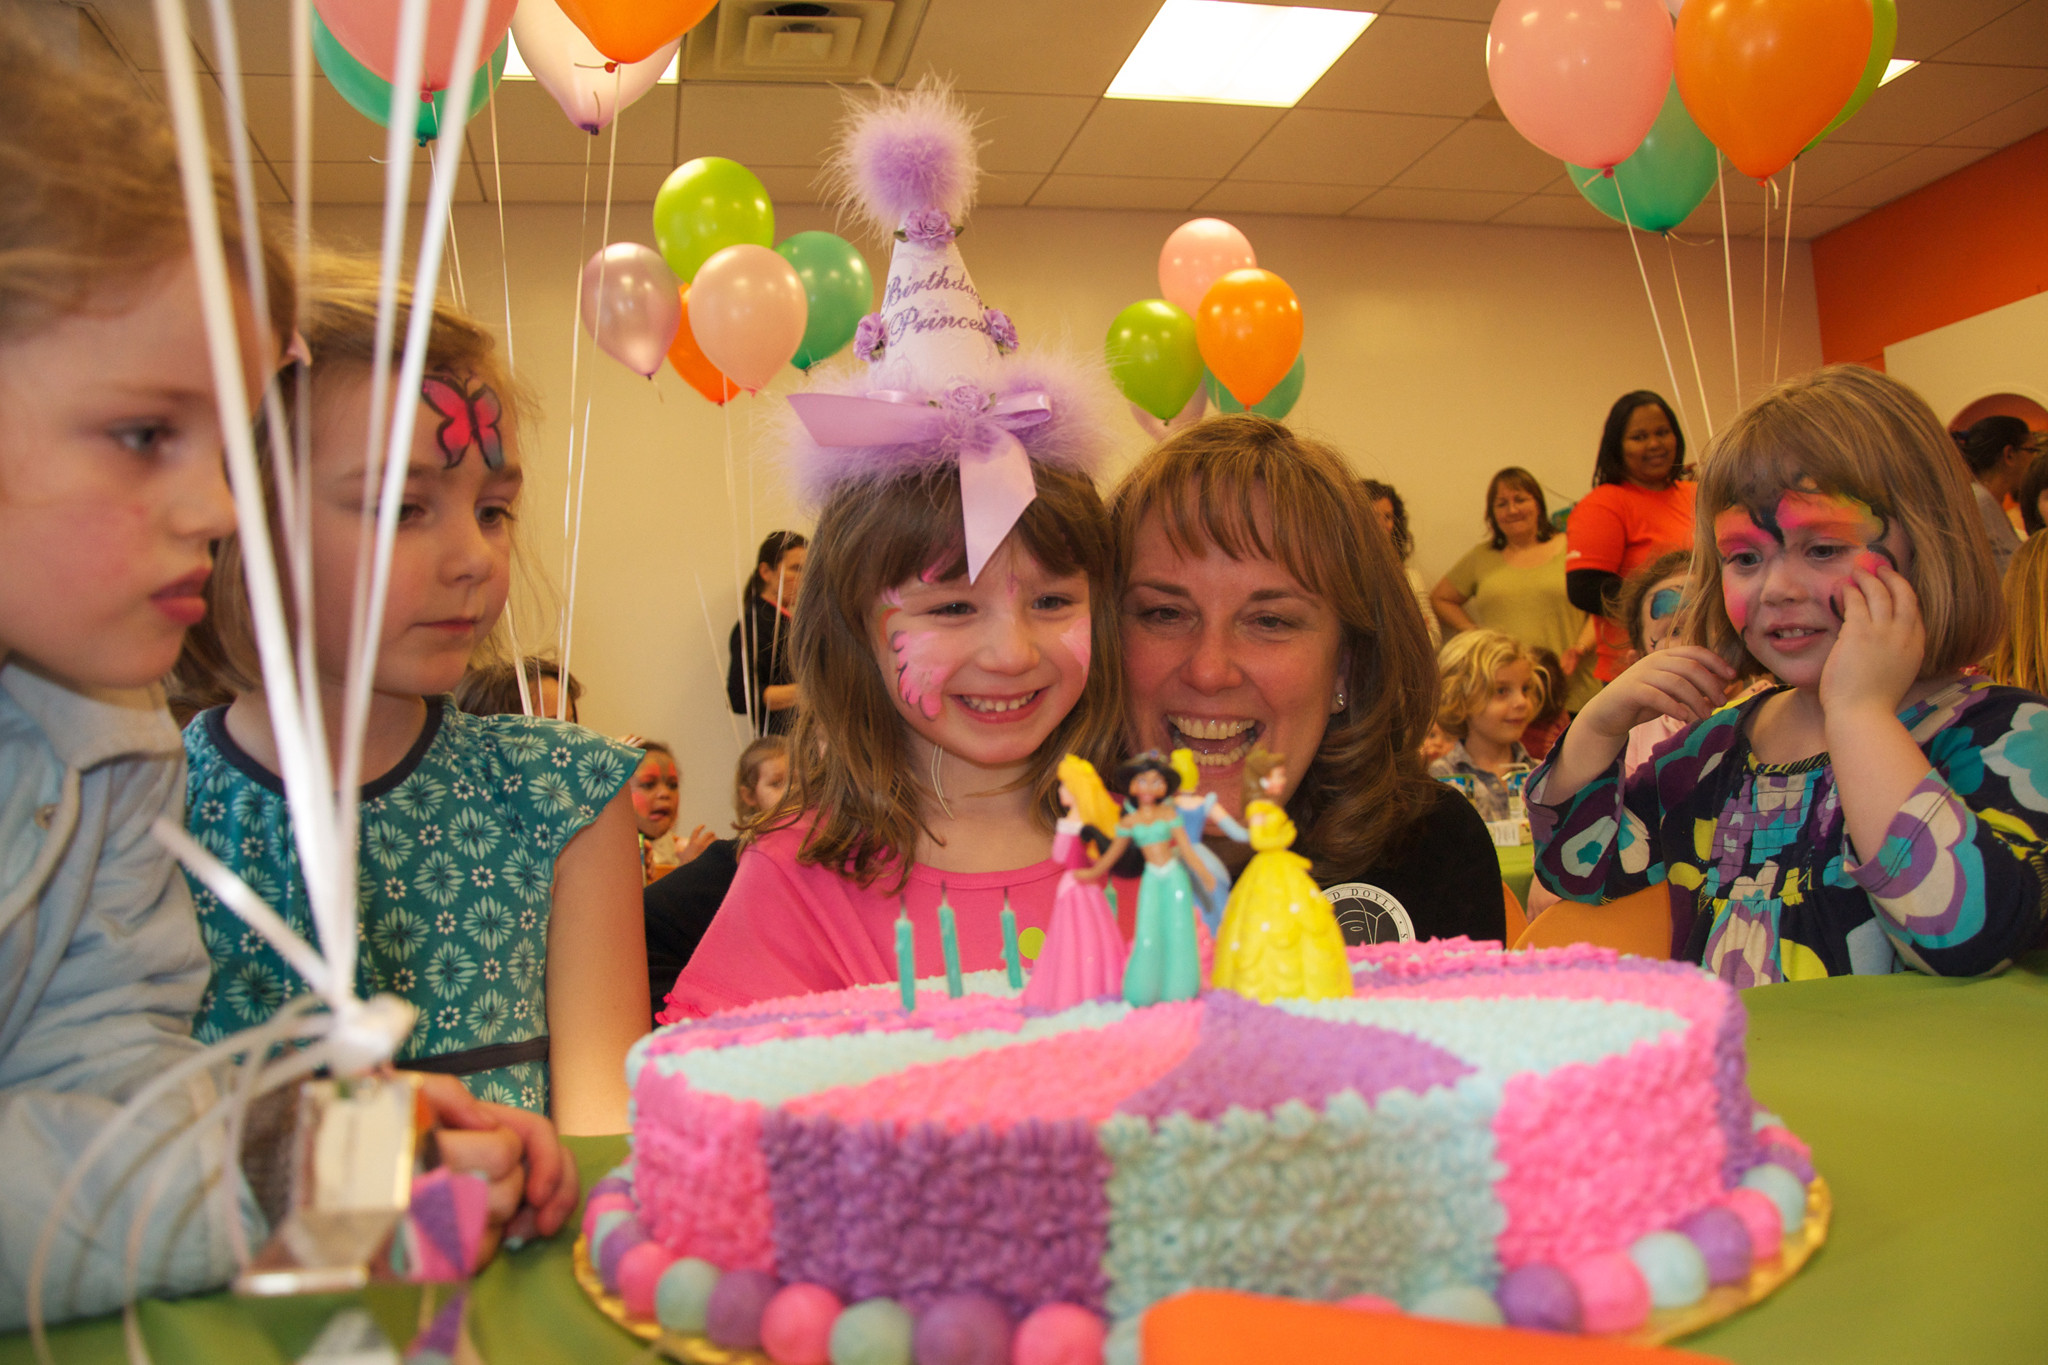 Best ideas about Fun Birthday Party Places For 10 Year Olds . Save or Pin Best Birthday Parties for Kids in NYC That Make an Epic Bash Now.